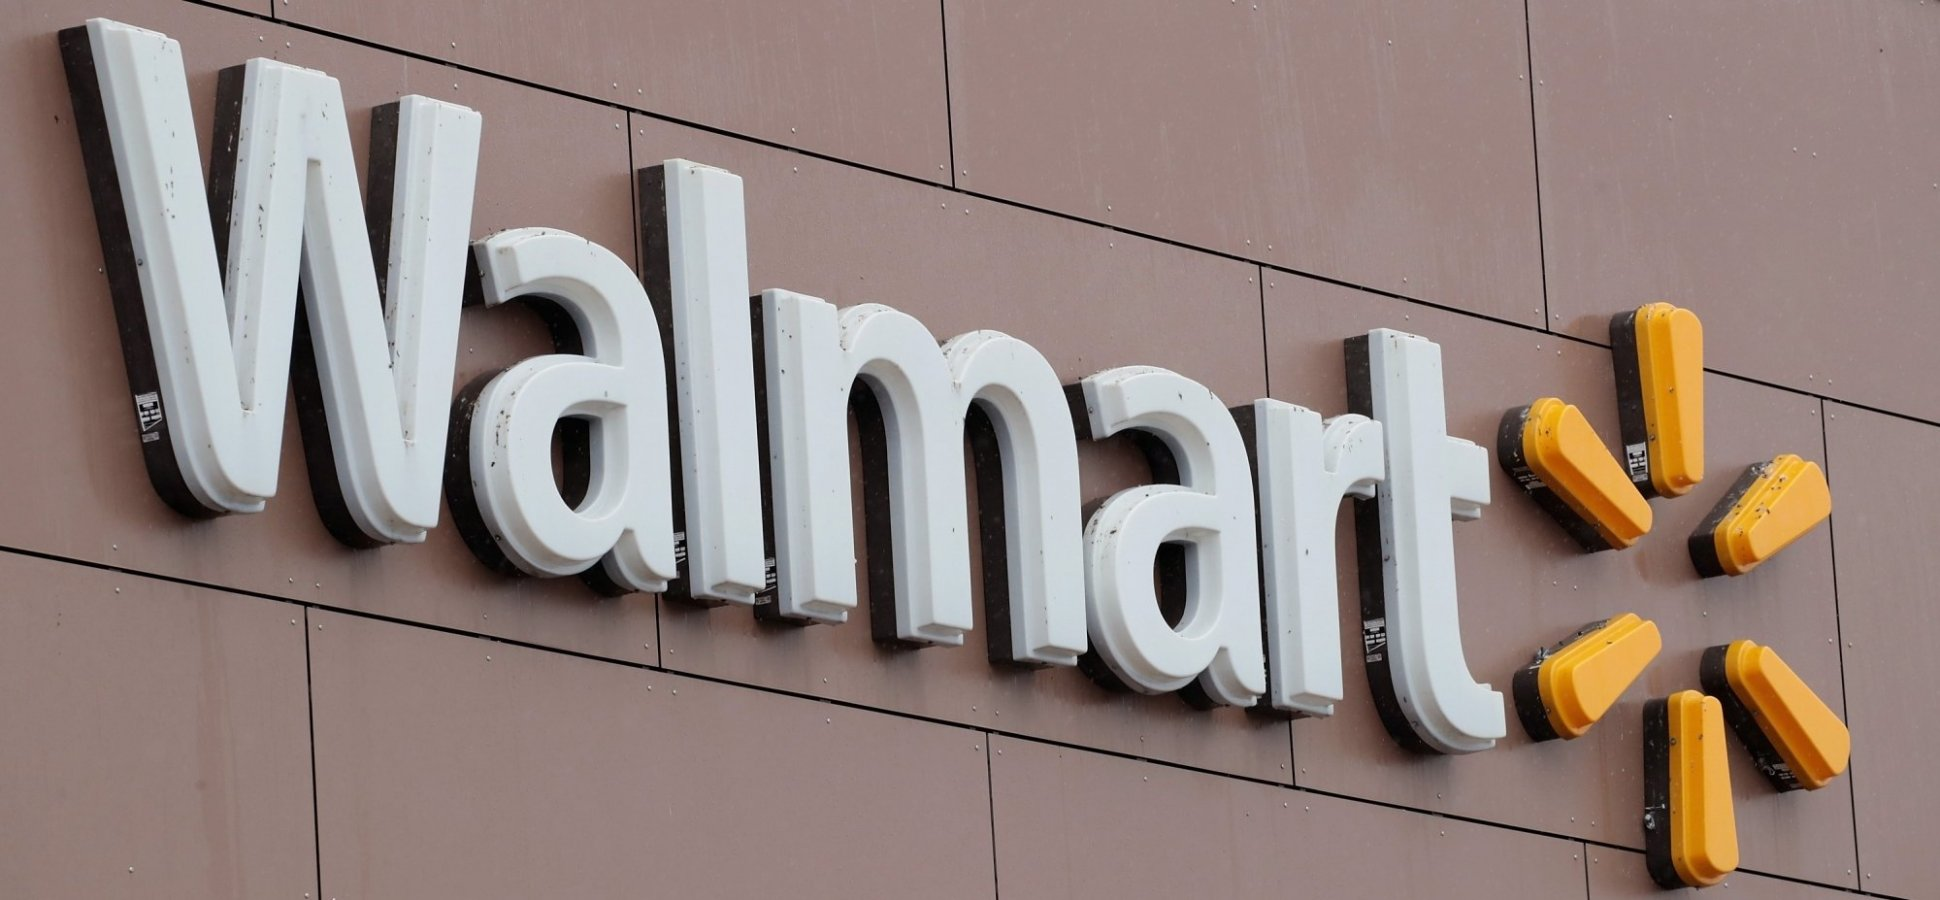 walmart employee policy and procedures